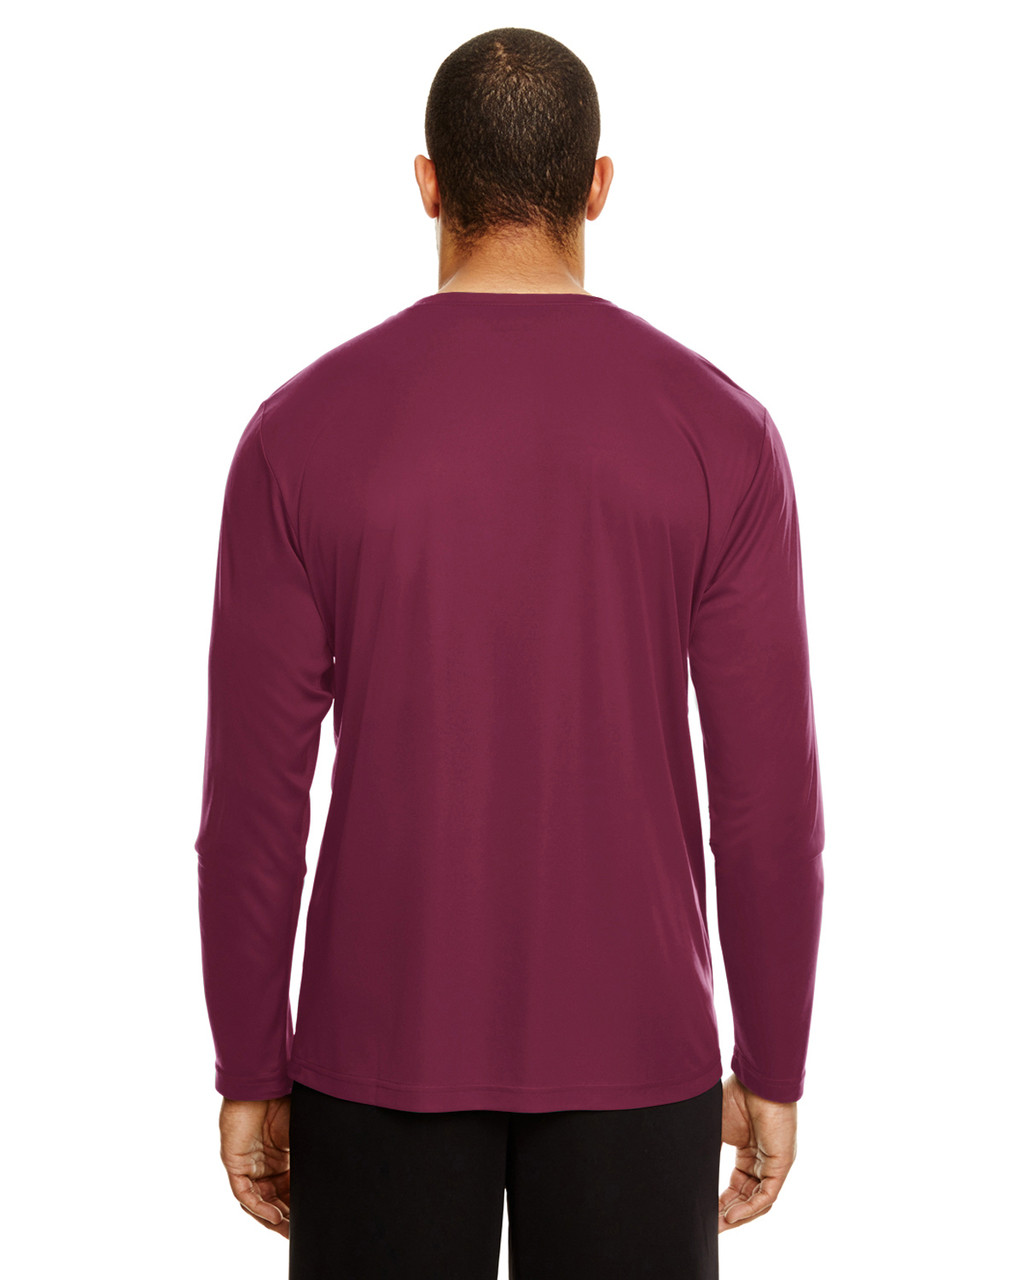 Sport Maroon, Back - TT11L Team 365 Men's Zone Performance Long Sleeve T-Shirt | BlankClothing.ca